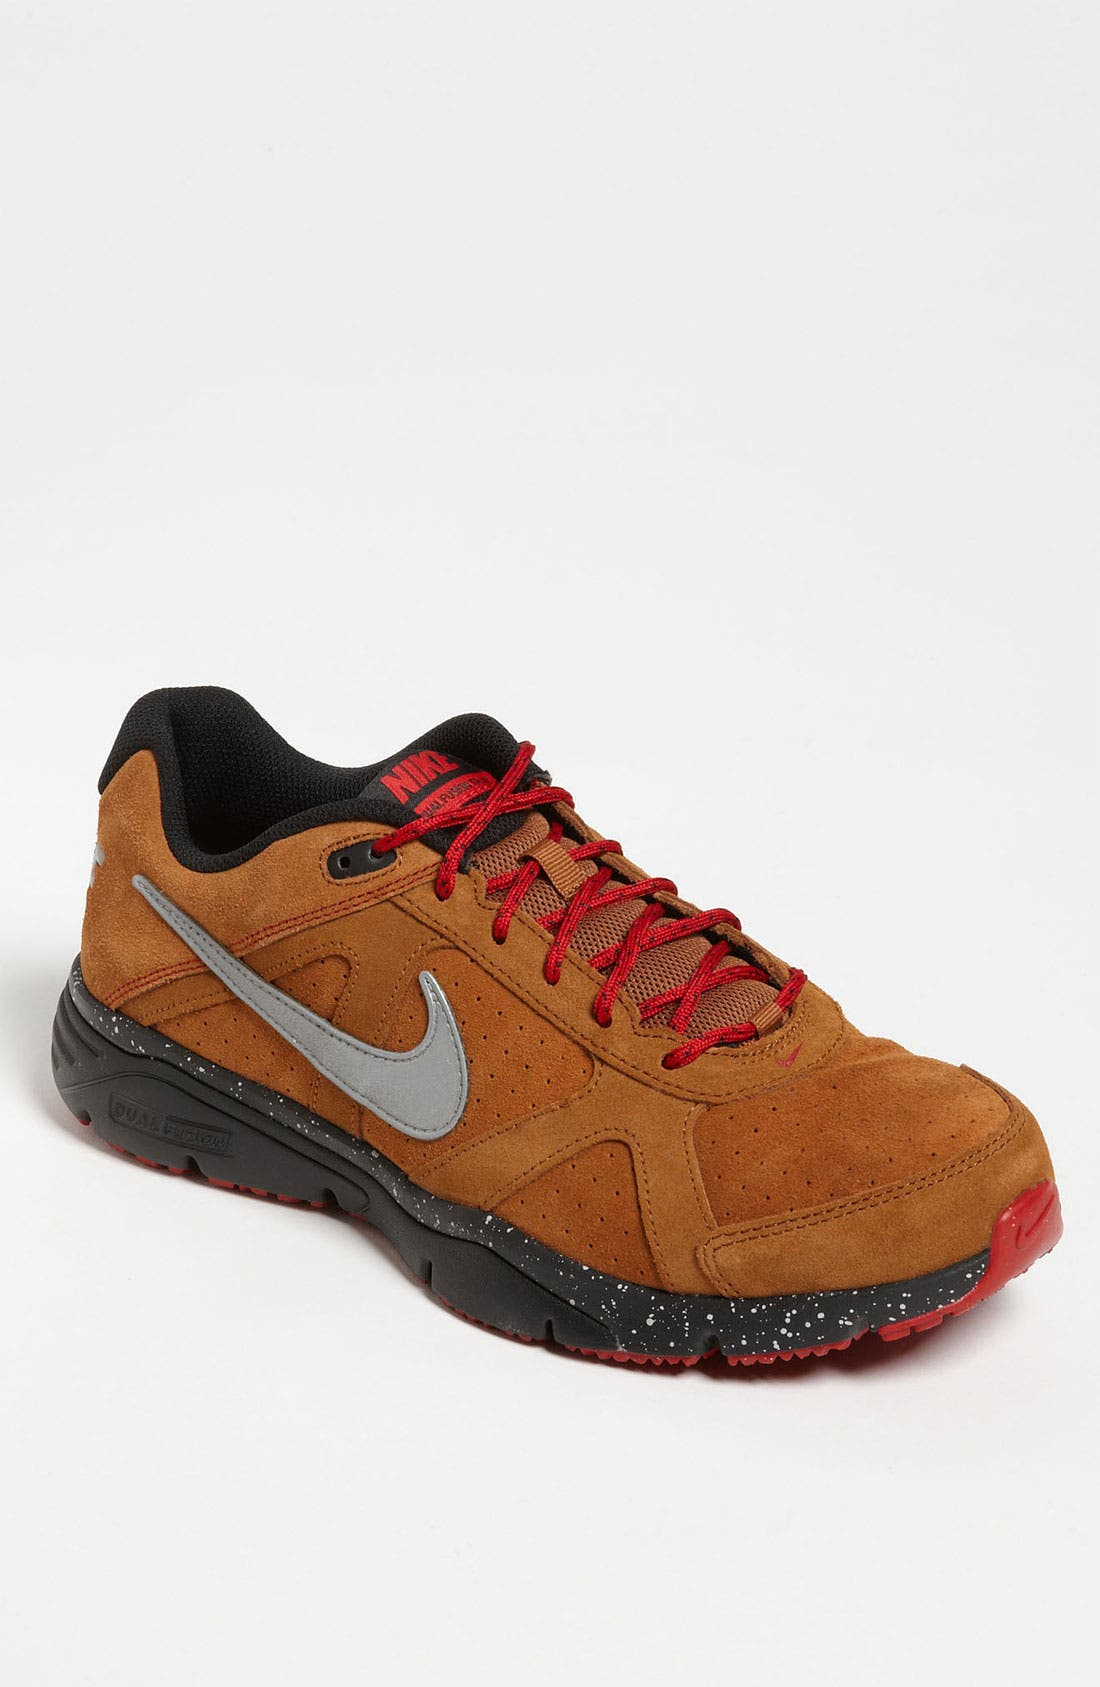 Alternate Image 1 Selected - Nike 'Dual Fusion TR III OTR' Running Shoe (Men)